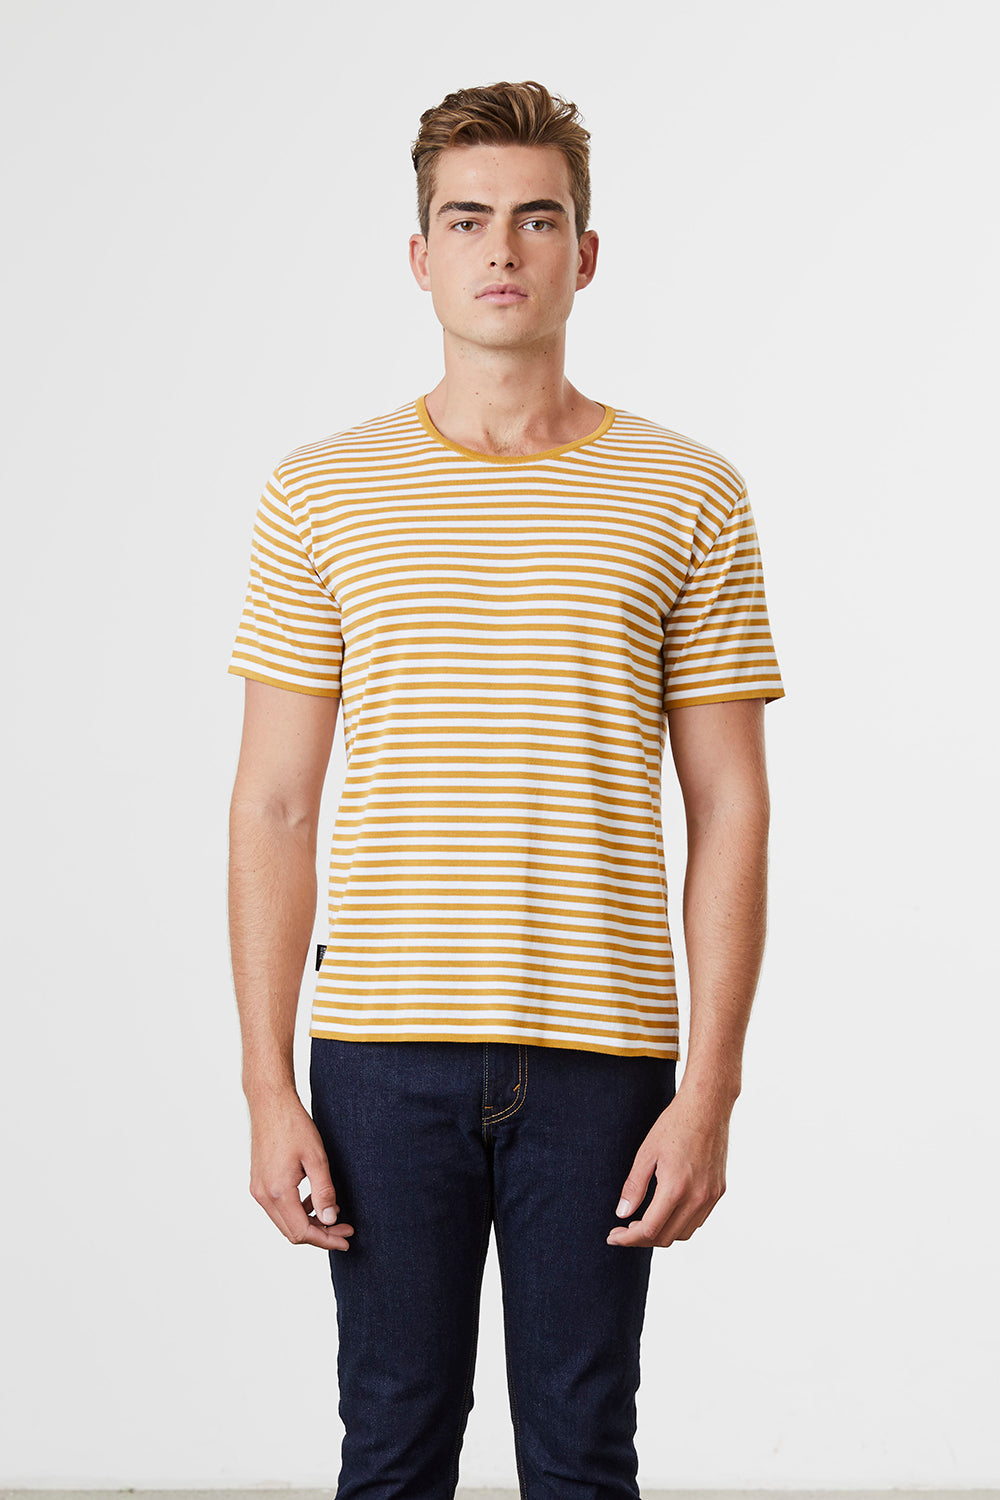 Striped Tee - Standard Issue